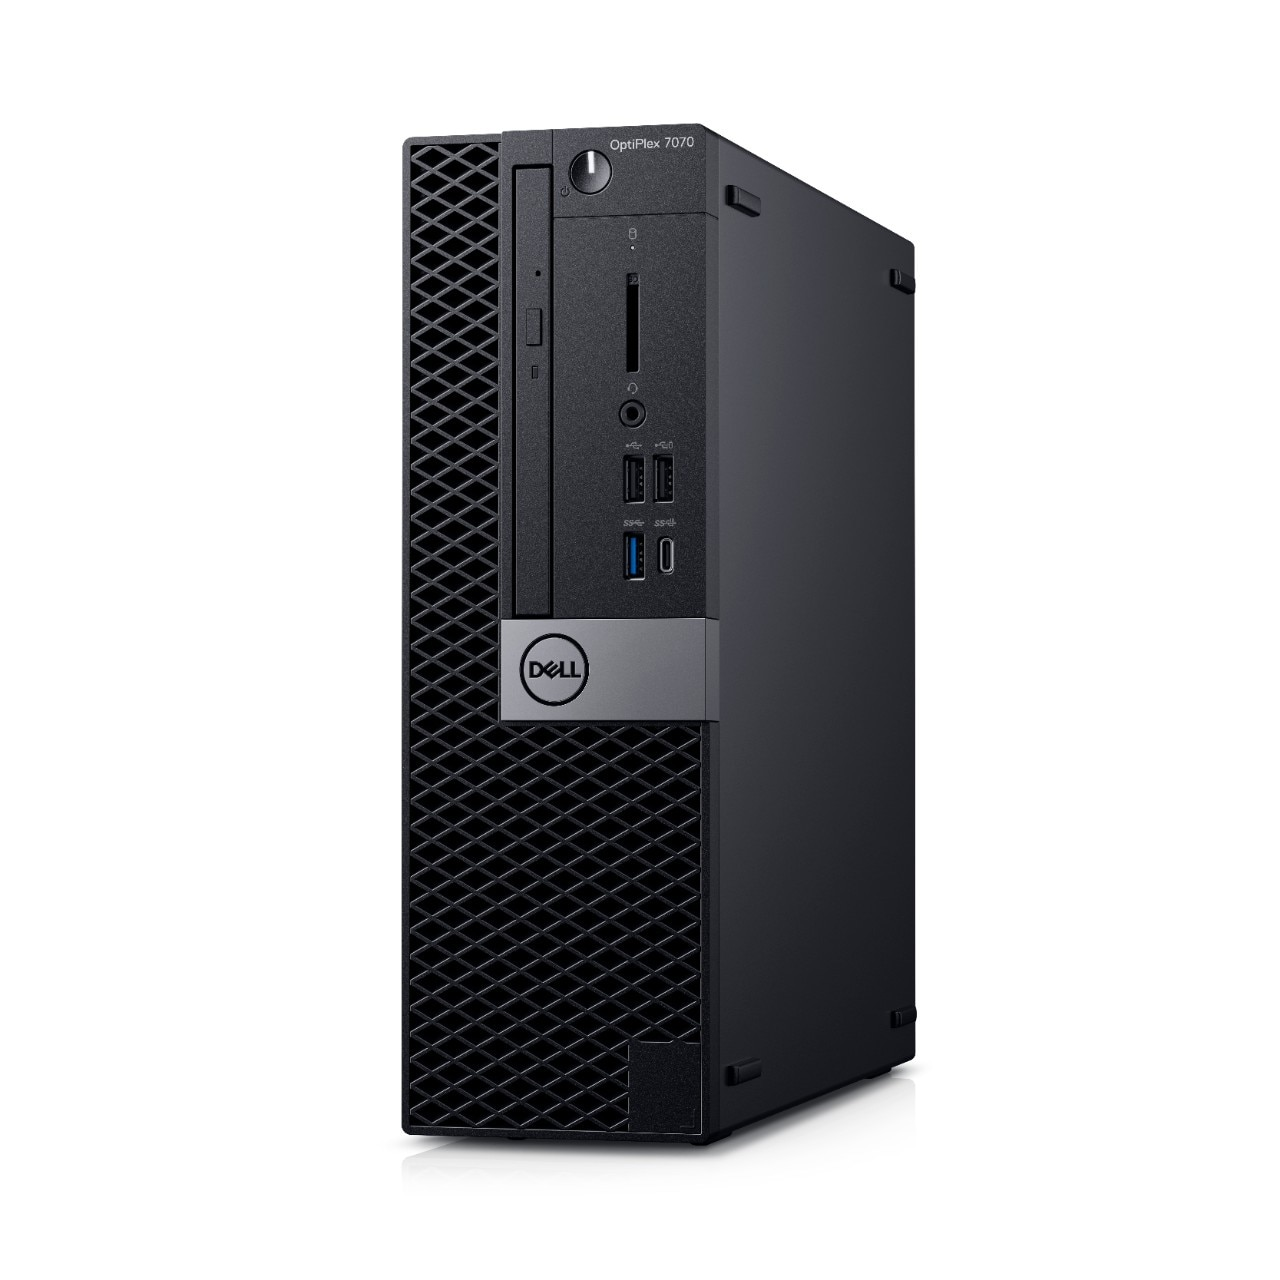 OptiPlex 7070 Small Form Factor